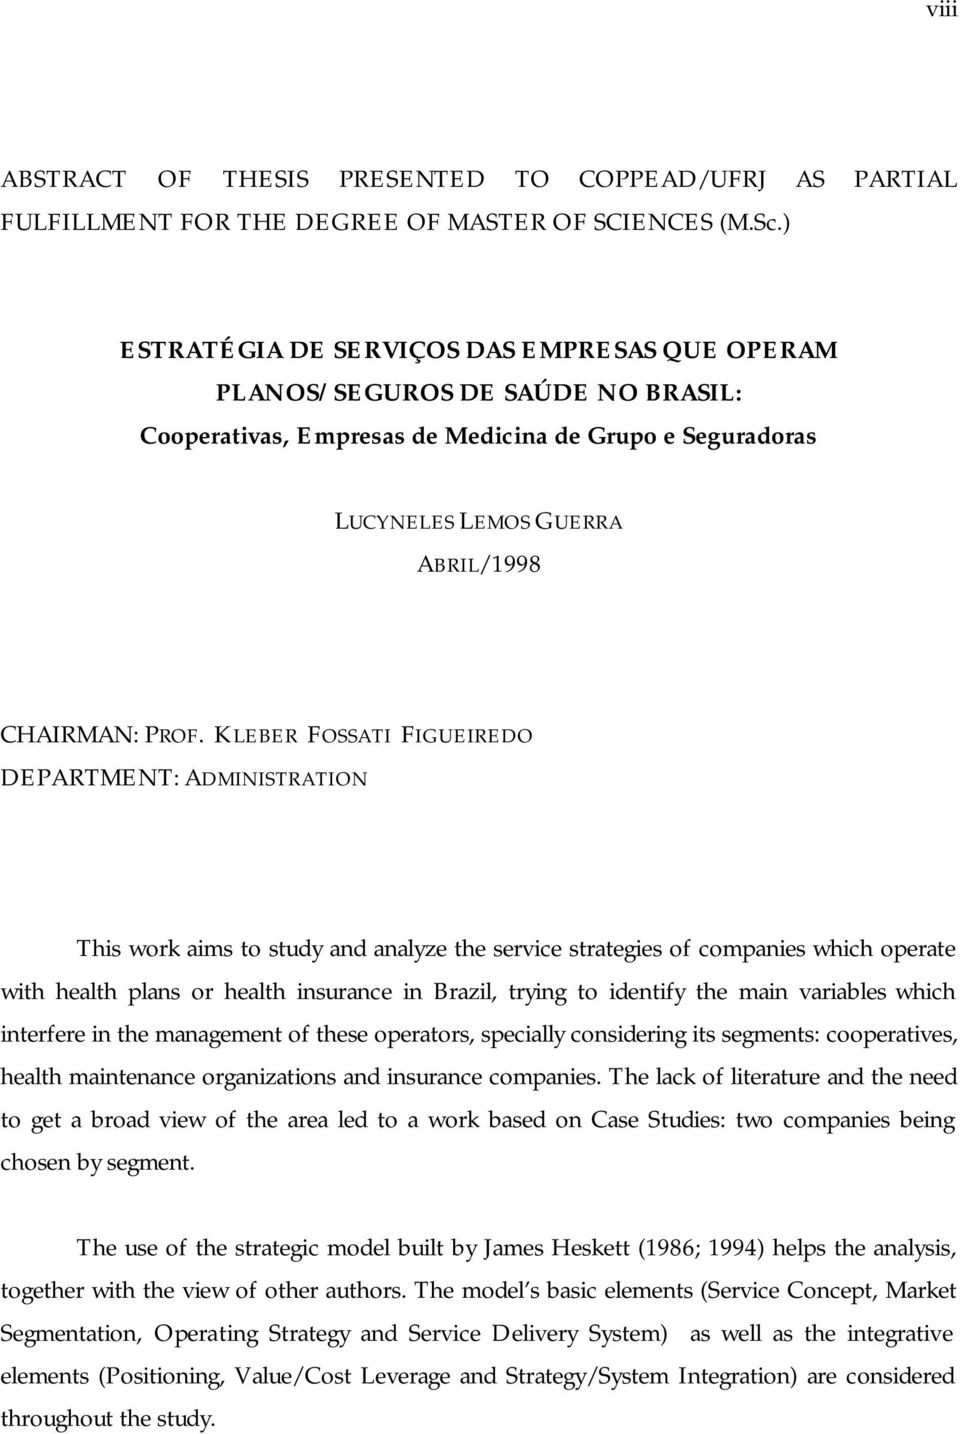 KLEBER FOSSATI FIGUEIREDO DEPARTMENT: ADMINISTRATION This work aims to study and analyze the service strategies of companies which operate with health plans or health insurance in Brazil, trying to